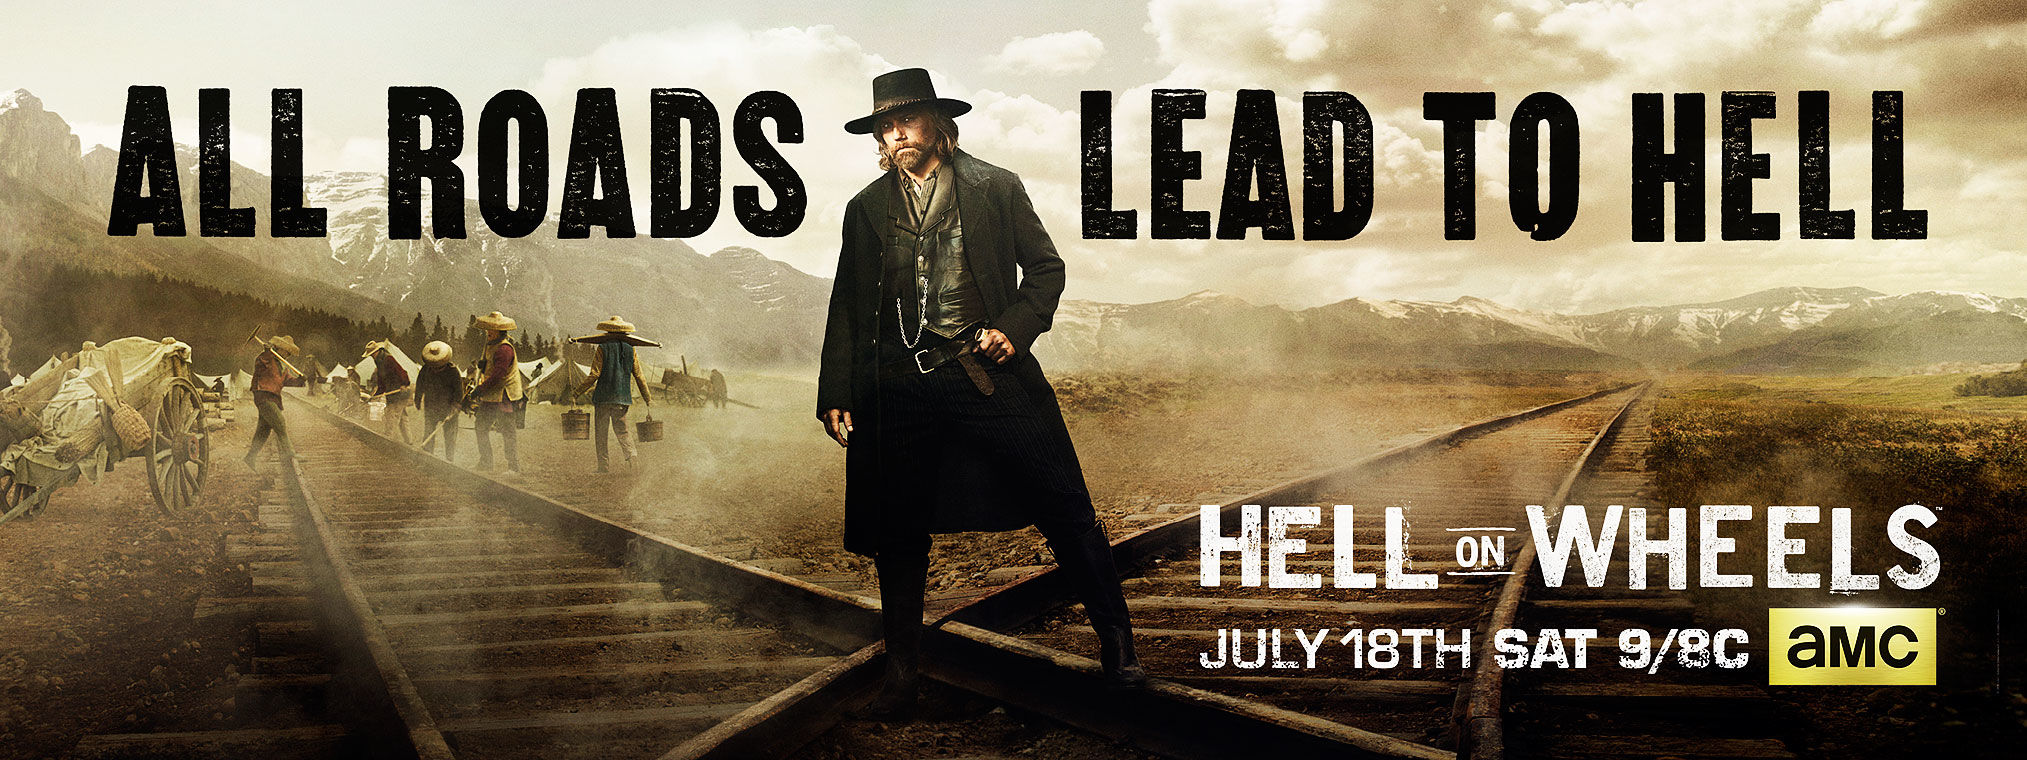 Hell on wheels wallpaper raise hell